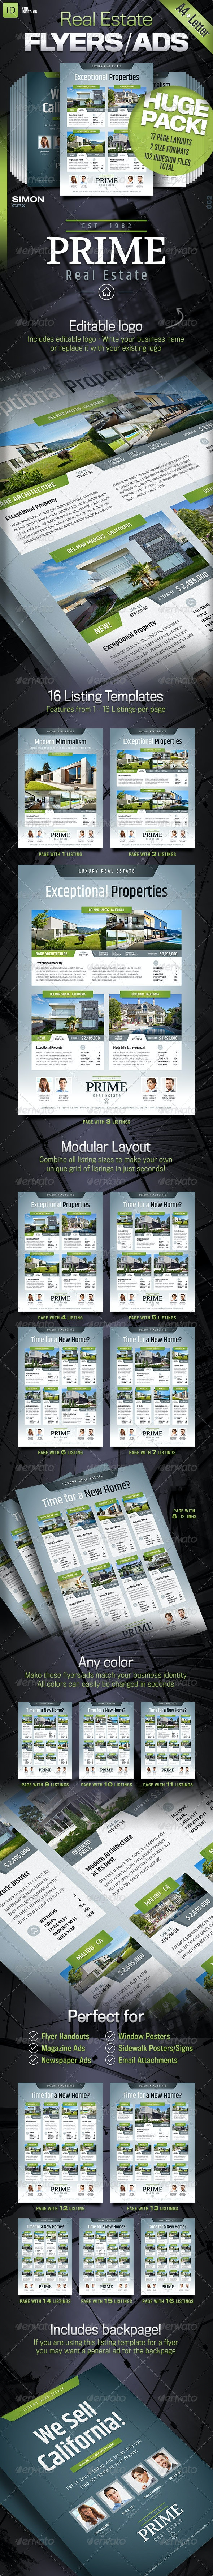 Real Estate Flyers/Ads - 'Prime' - Commerce Flyers